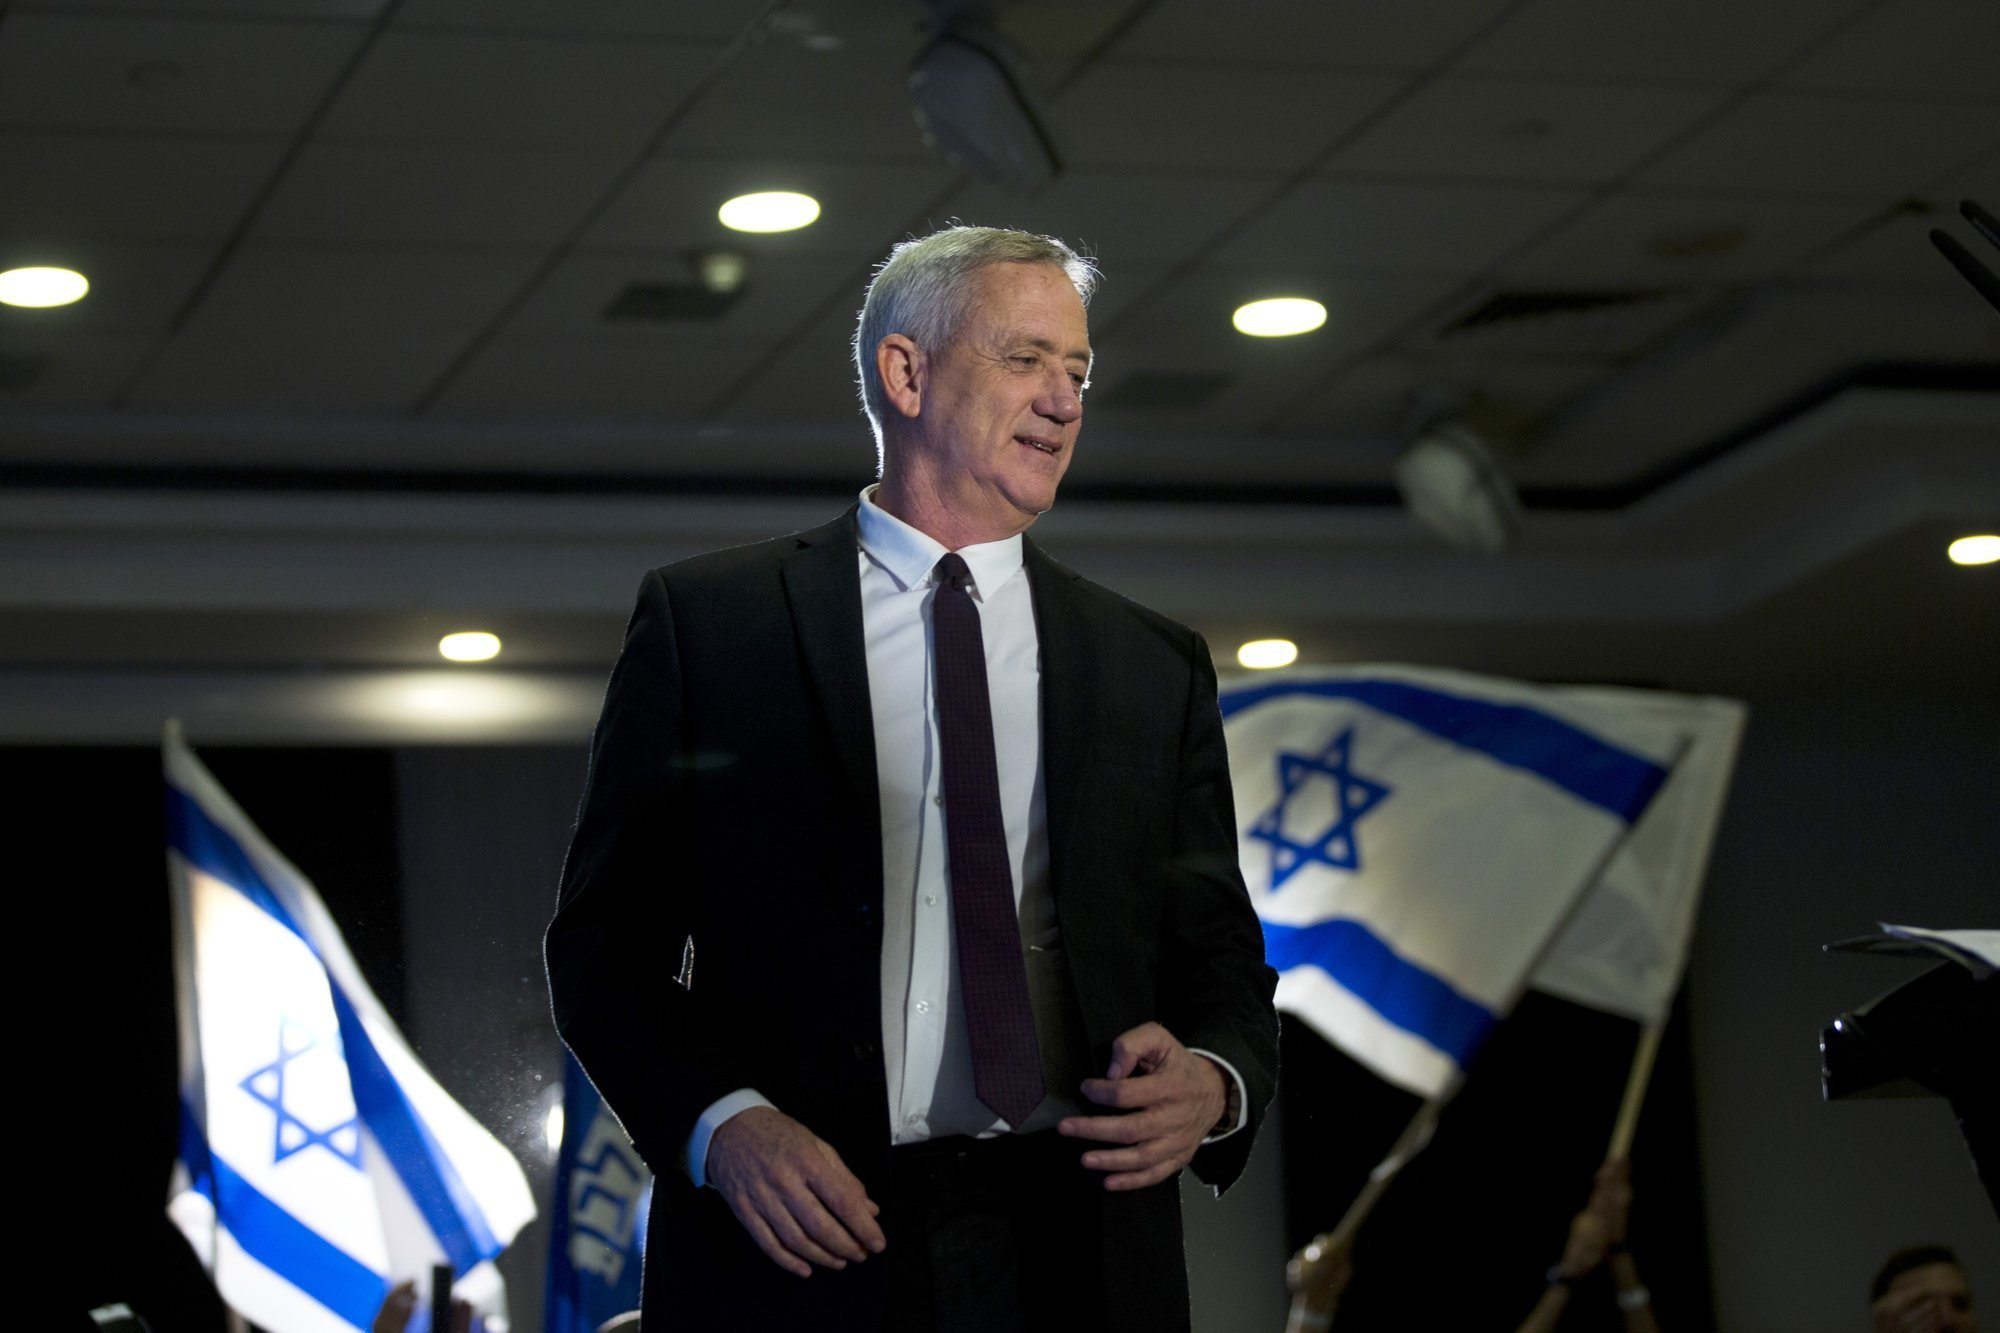 Israel's defence minister Benny Gantz pledged on Sunday to cooperate with the United States on Iran, voicing hope that Israeli security would be safeguarded under any renewed Iranian nuclear deal that Washington reaches. — AP/ File